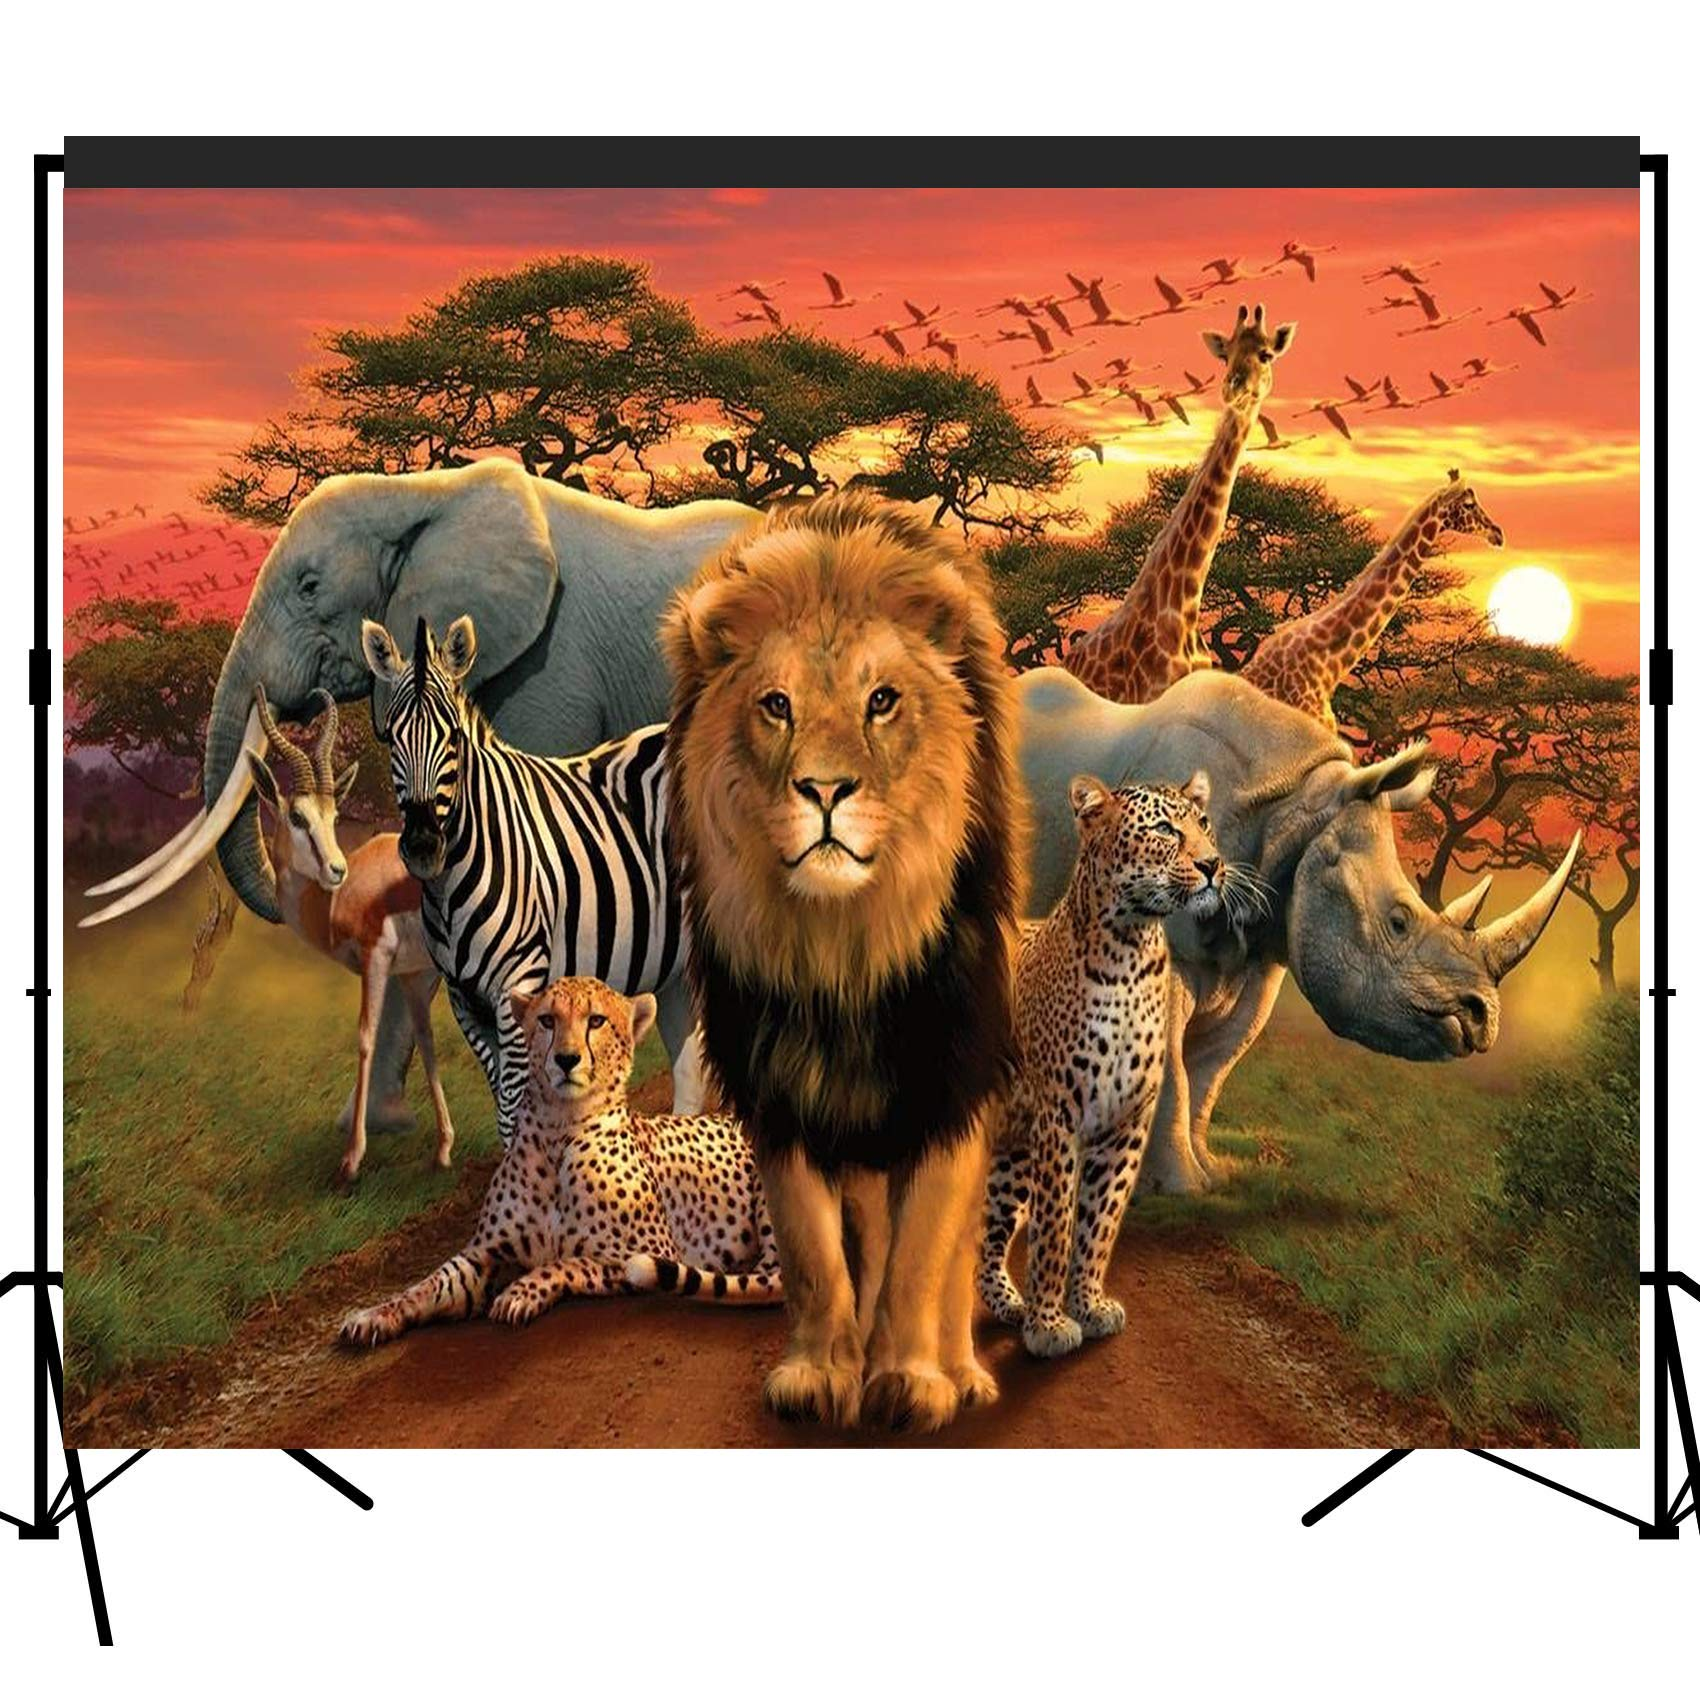 Musykrafties Tropical African Forest Jungle Safari Scenic Backdrop Large Banner Photography Studio Fabric Background Photobooth Prop 7x6feet #2194